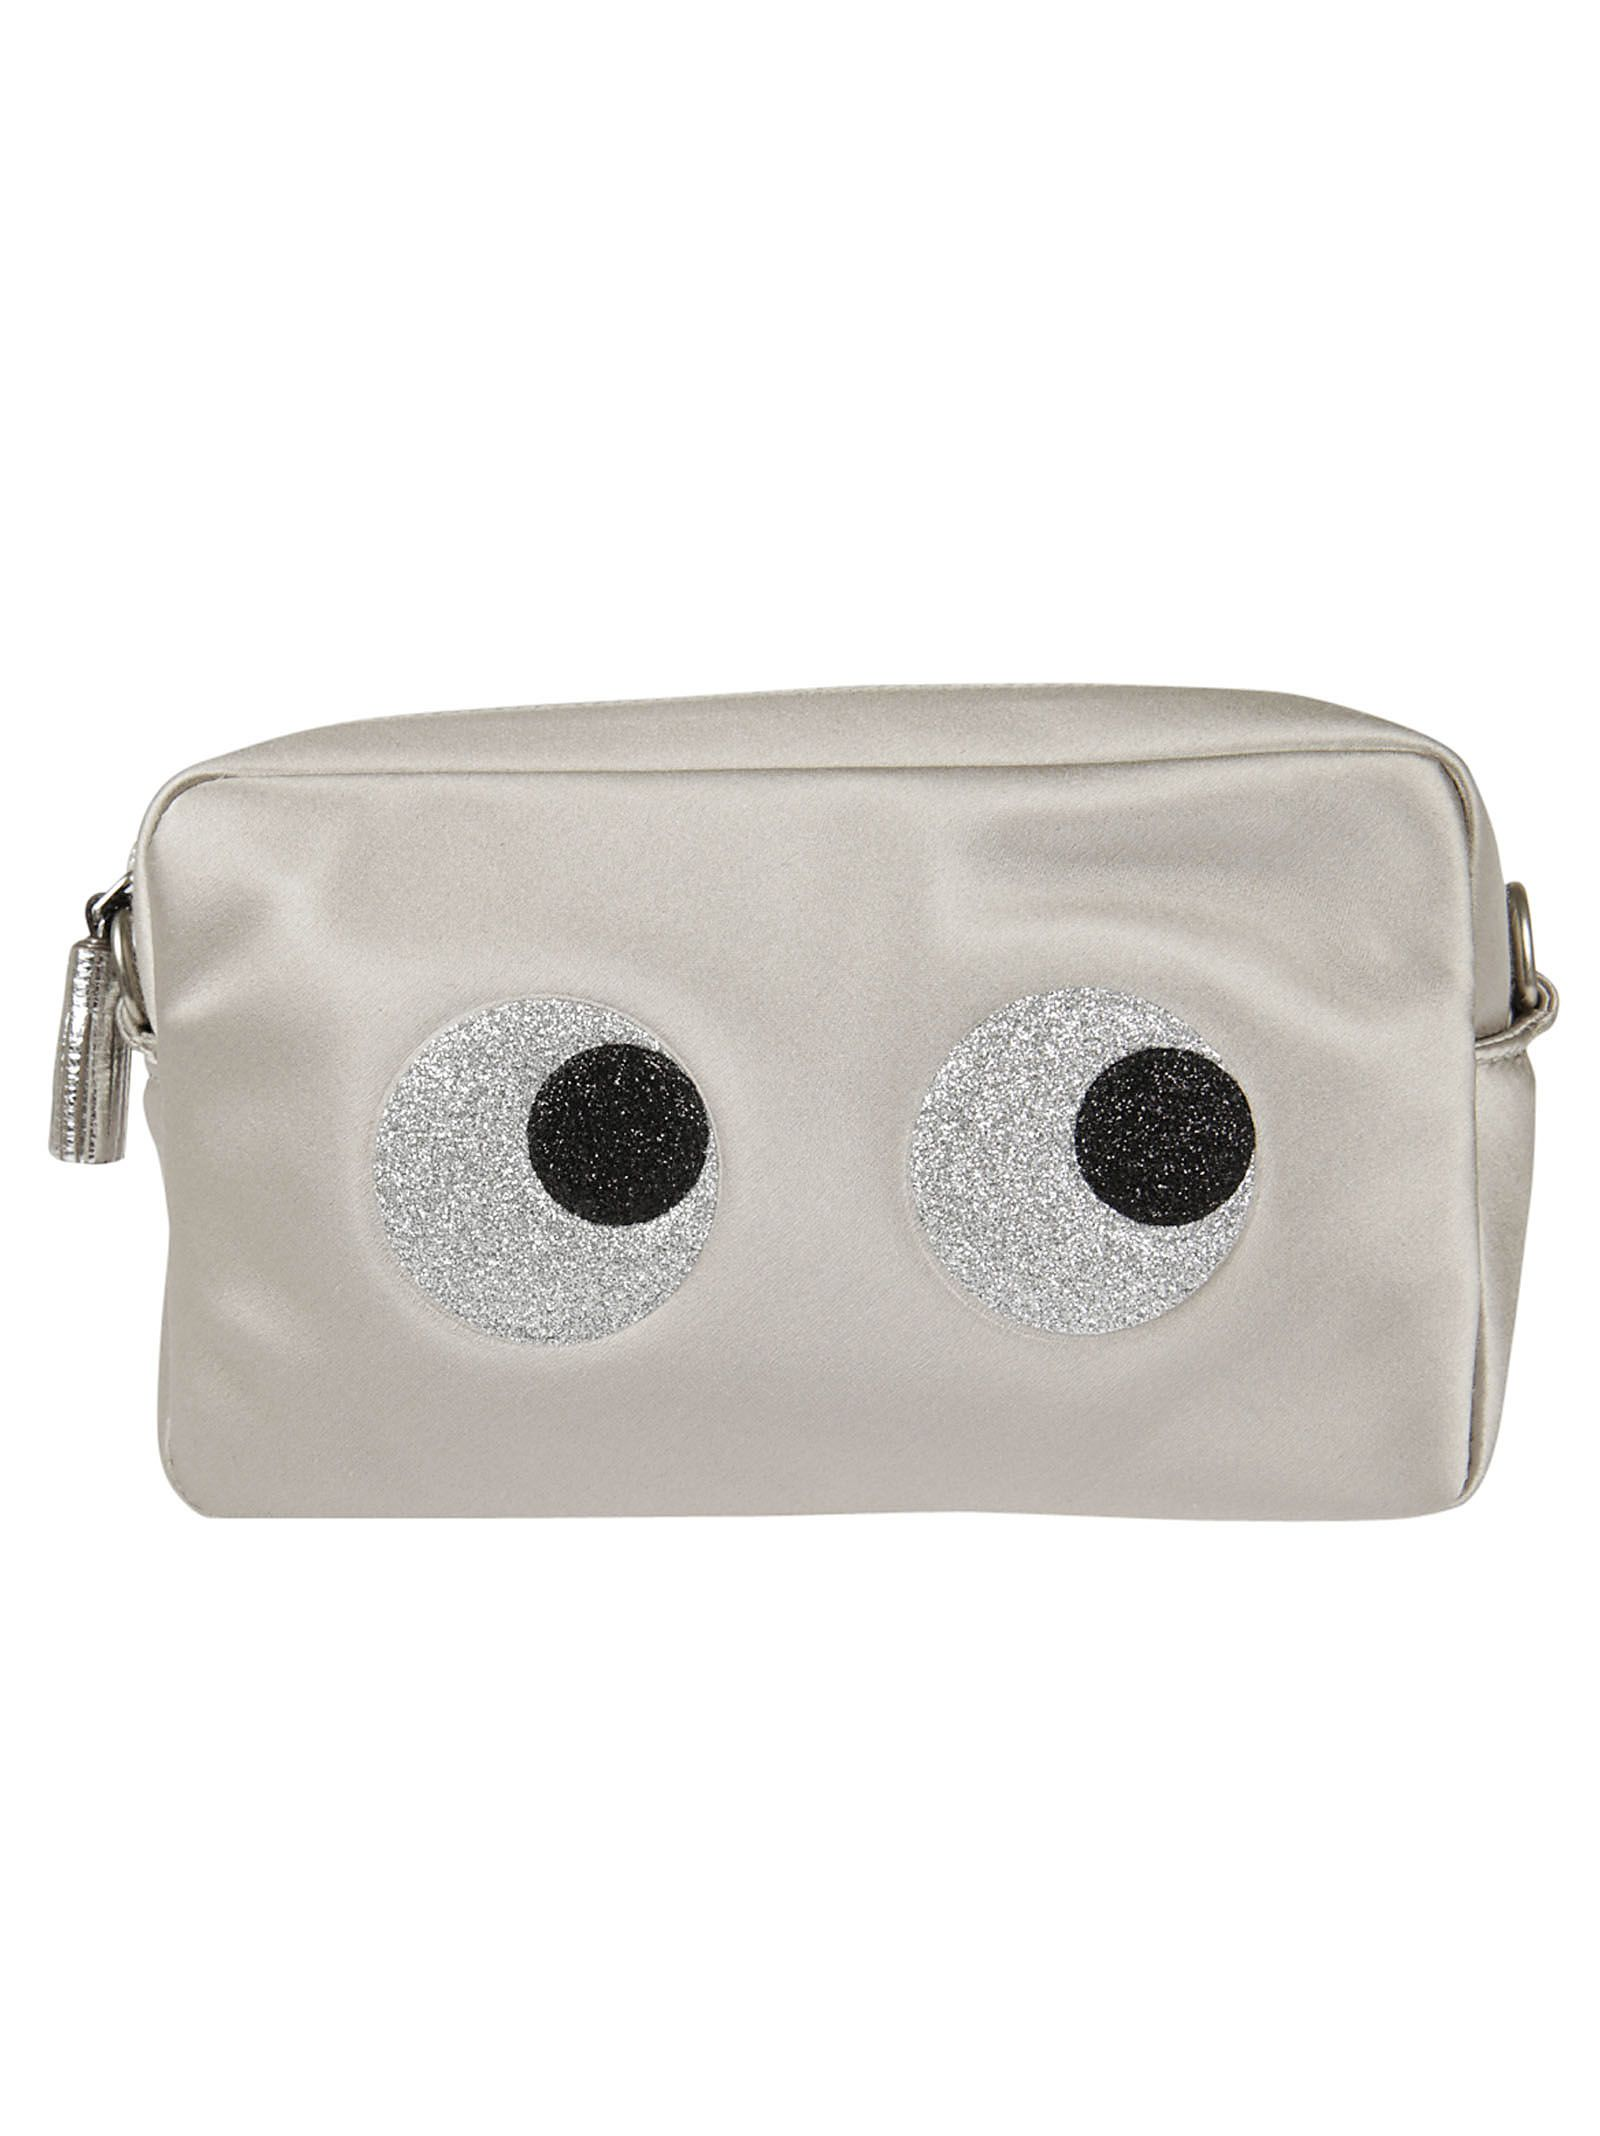 Anya Hindmarch Eyes Motif Zipped Clutch